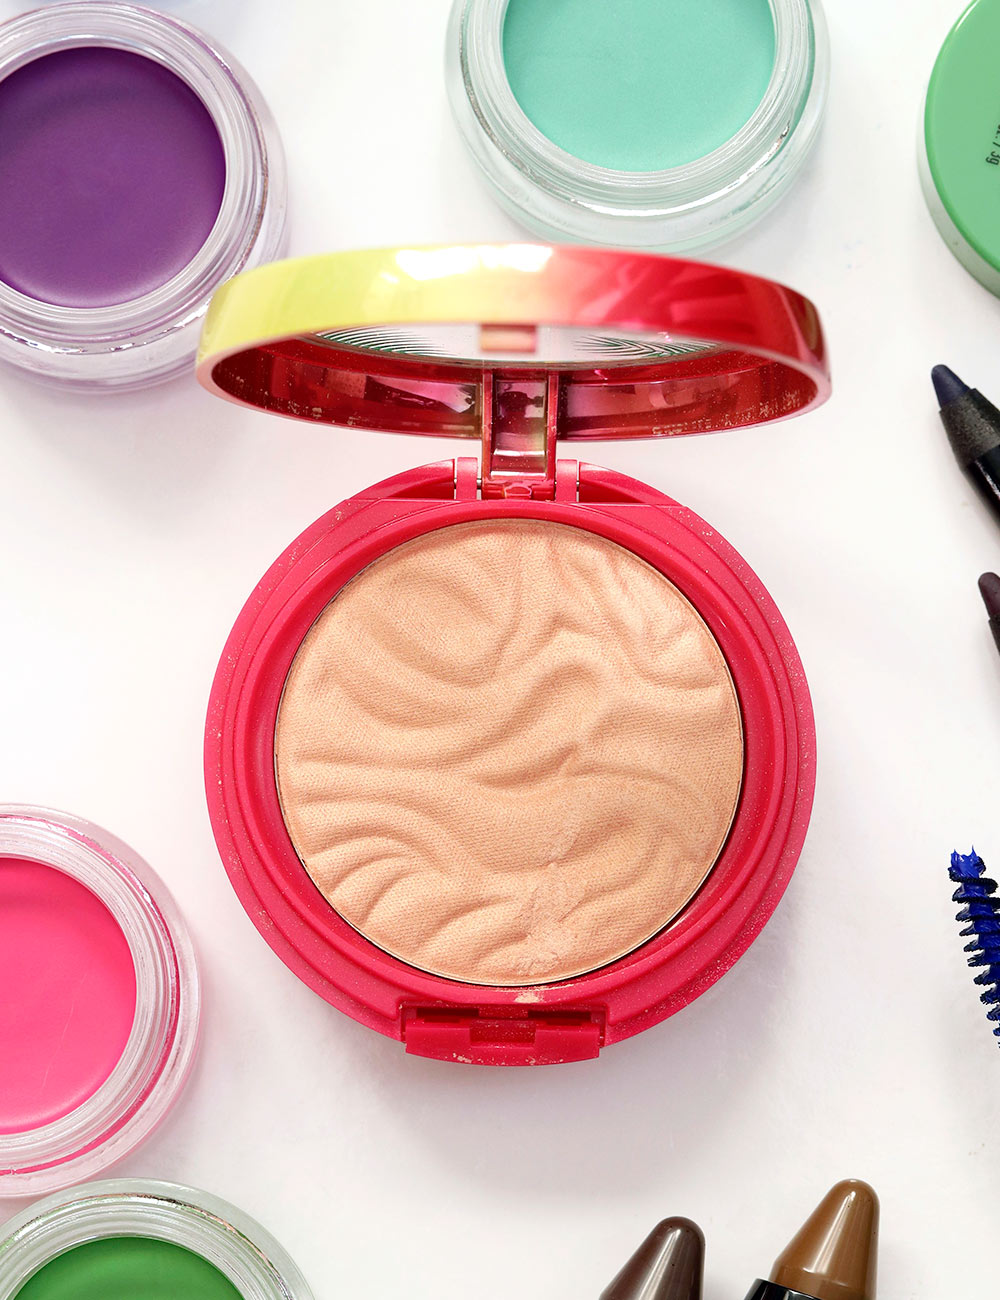 physicians formula butter blush